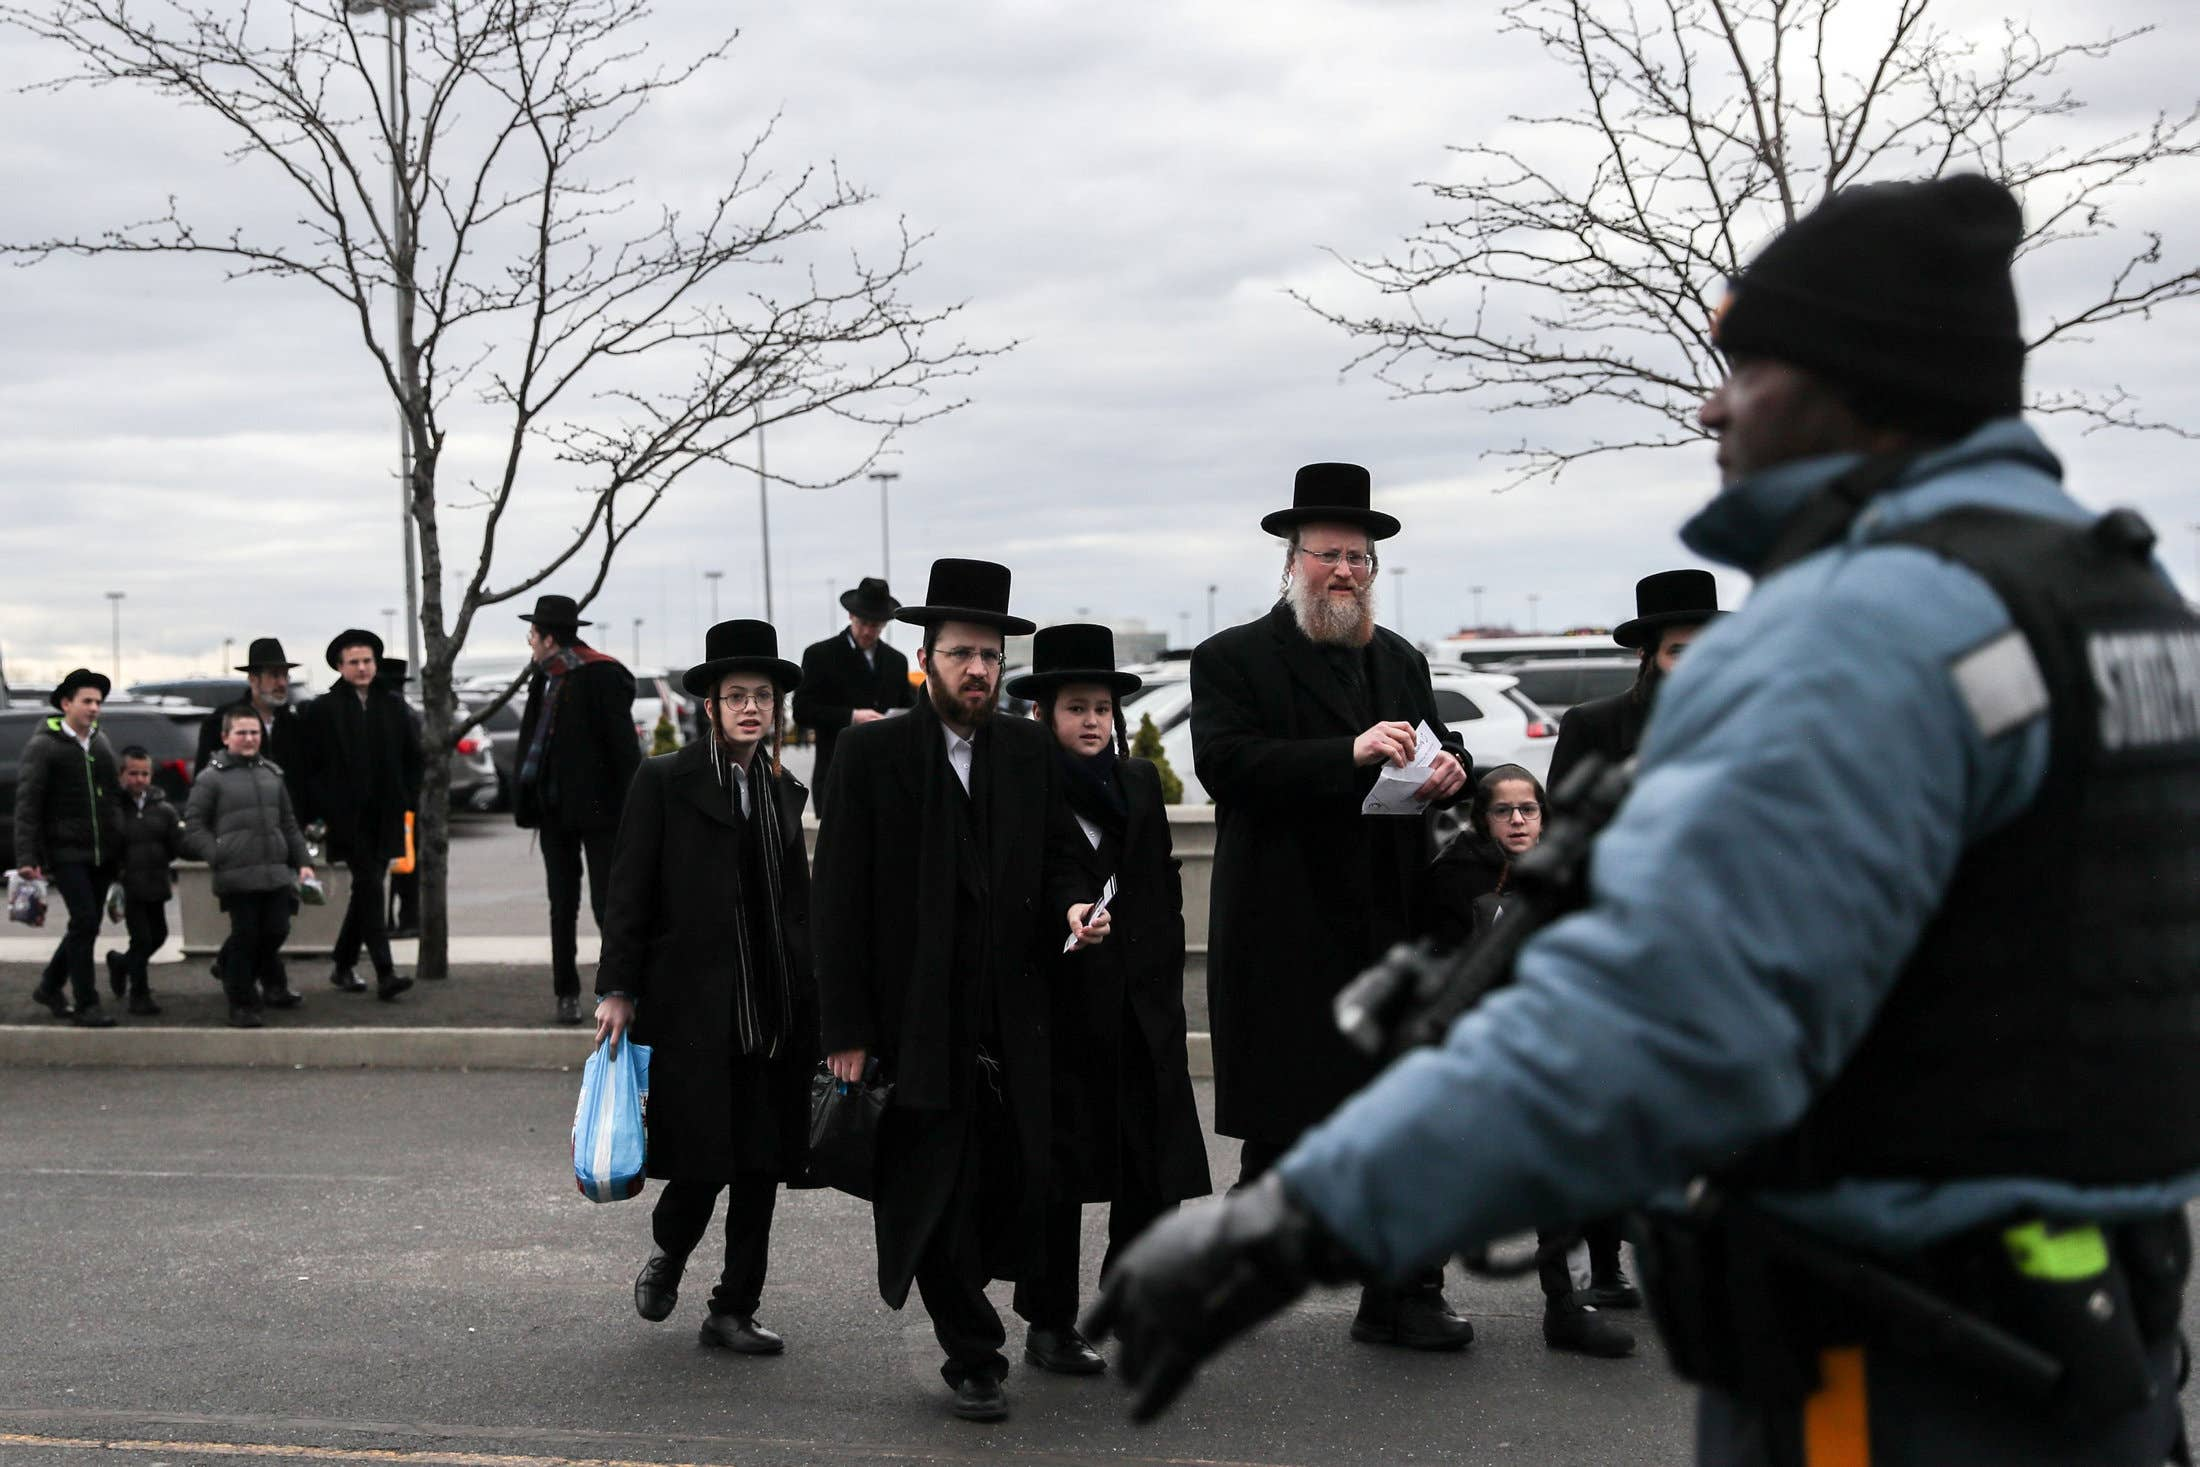 Take Your Masks And Shove It Lakewood Ultra Orthodox Community Reacts To Deeply Concerning Covid Cases In Ocean County Nj Left Behind